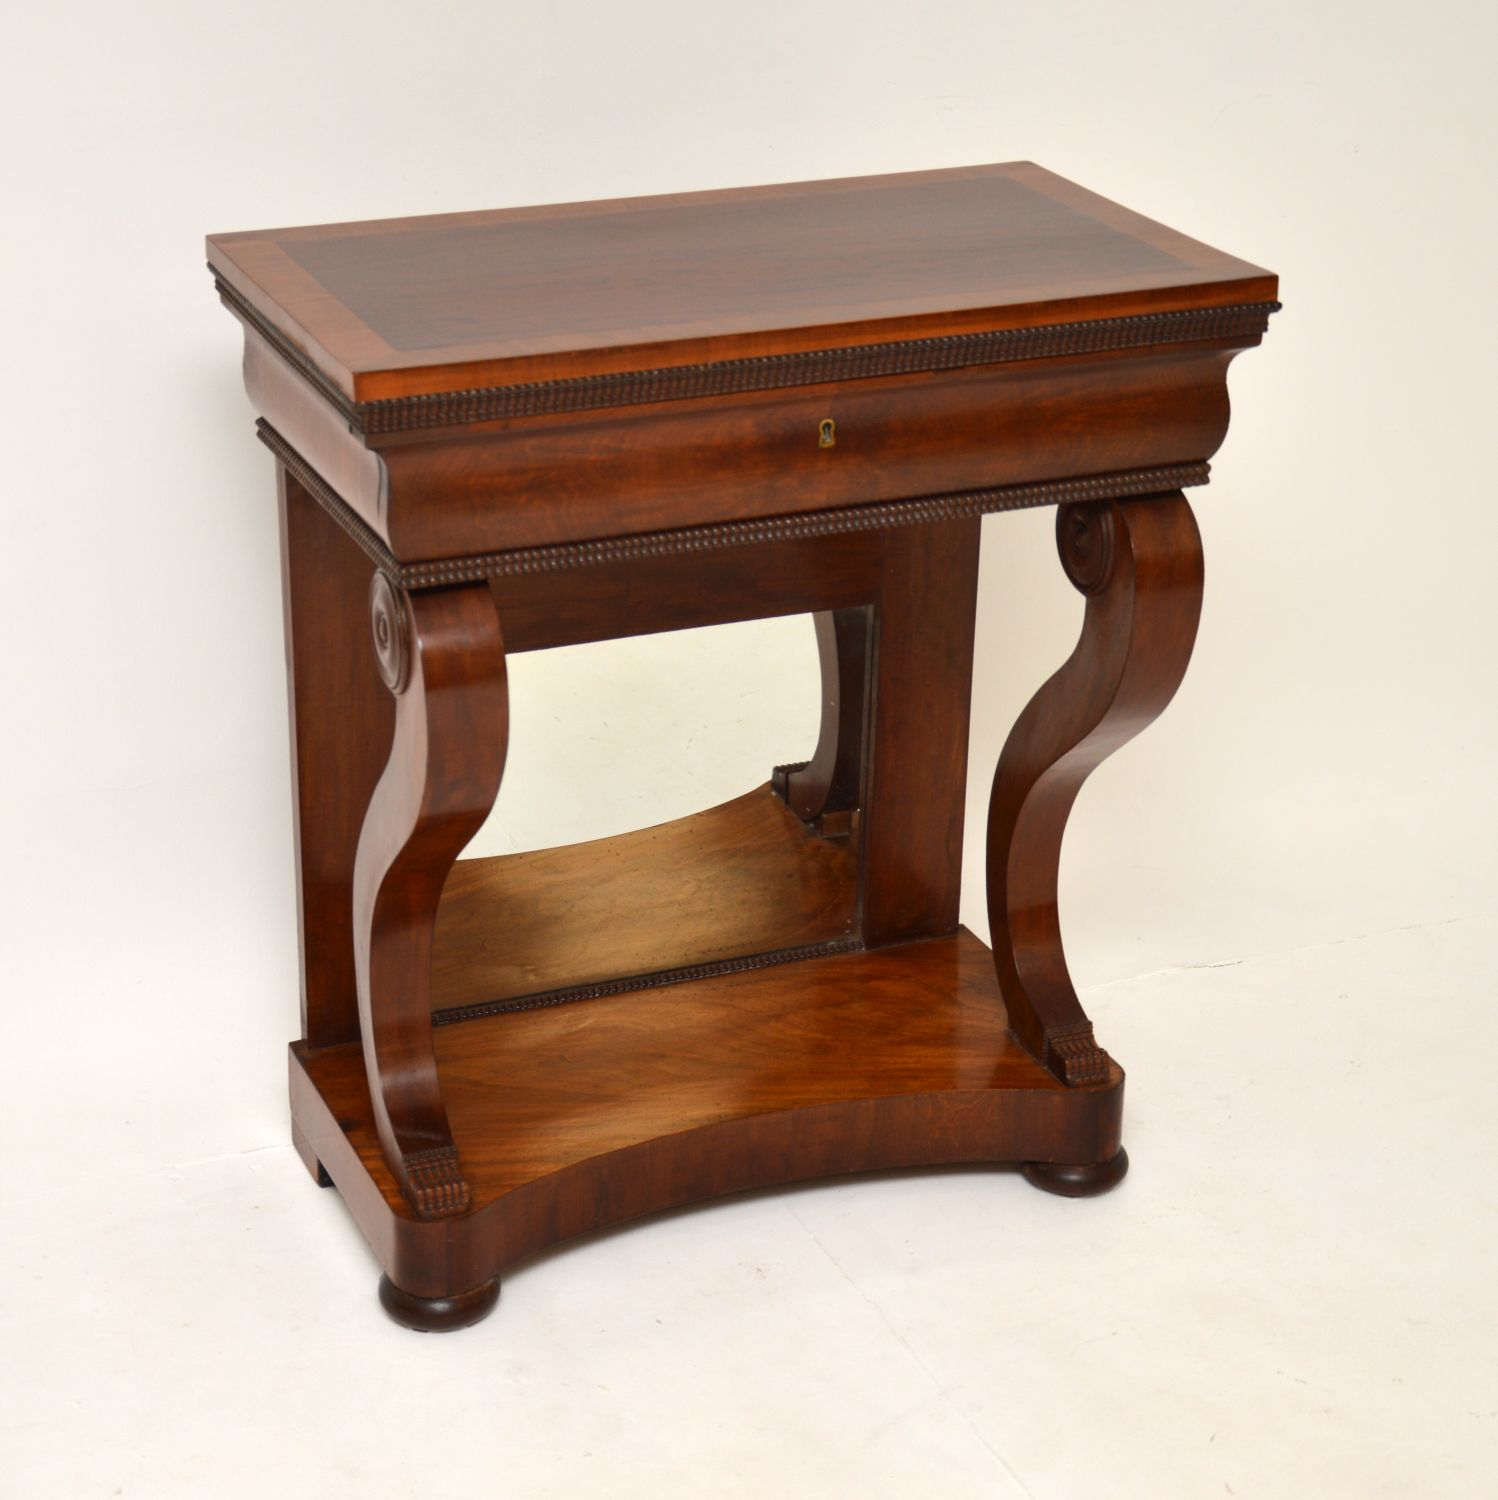 antique regency william IV mahogany console side table